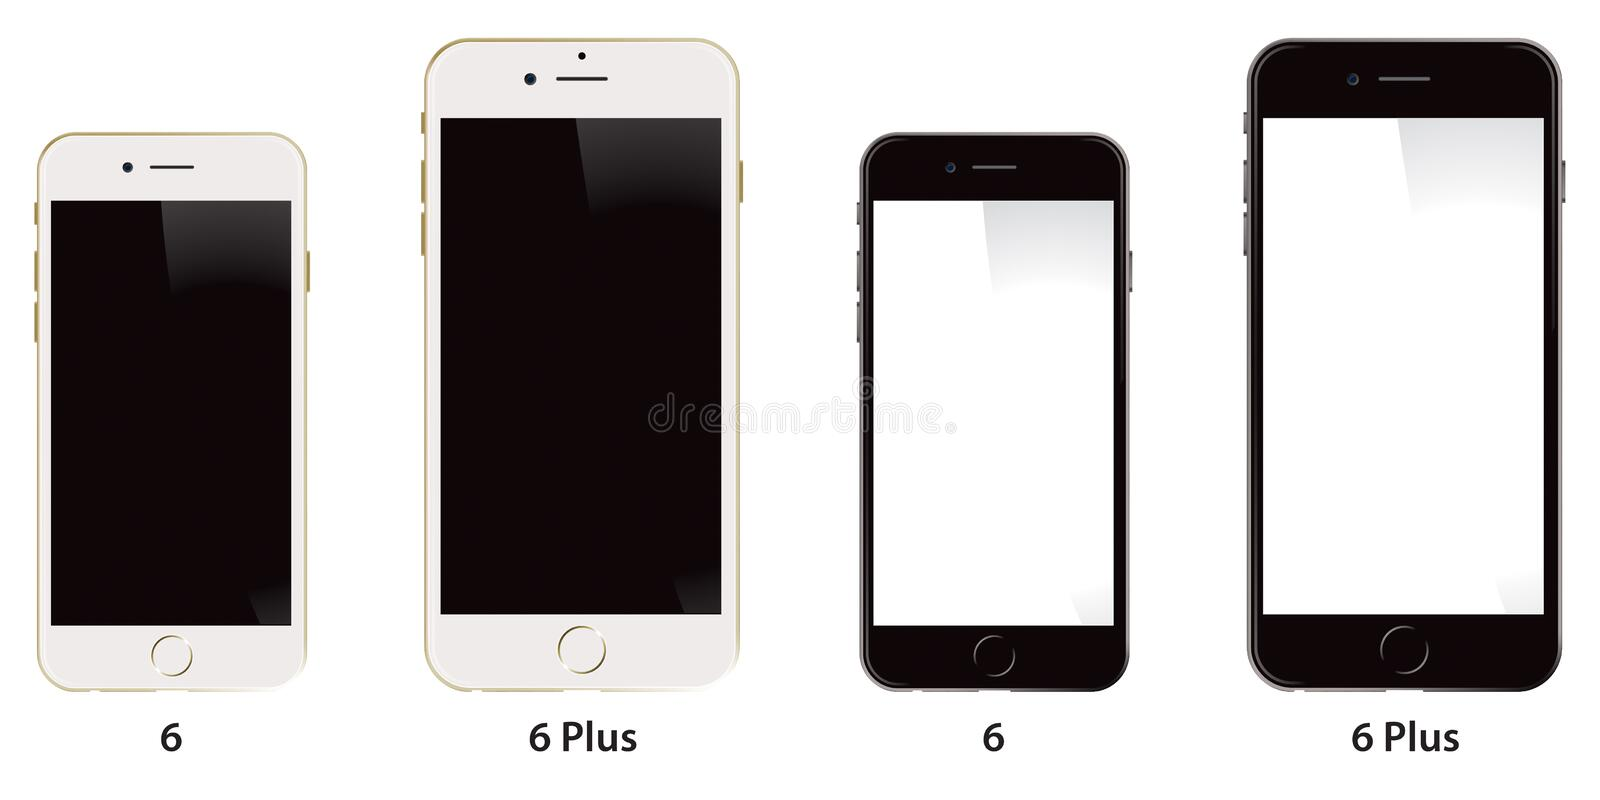 Apple-iPhone 6 Plus lizenzfreie abbildung